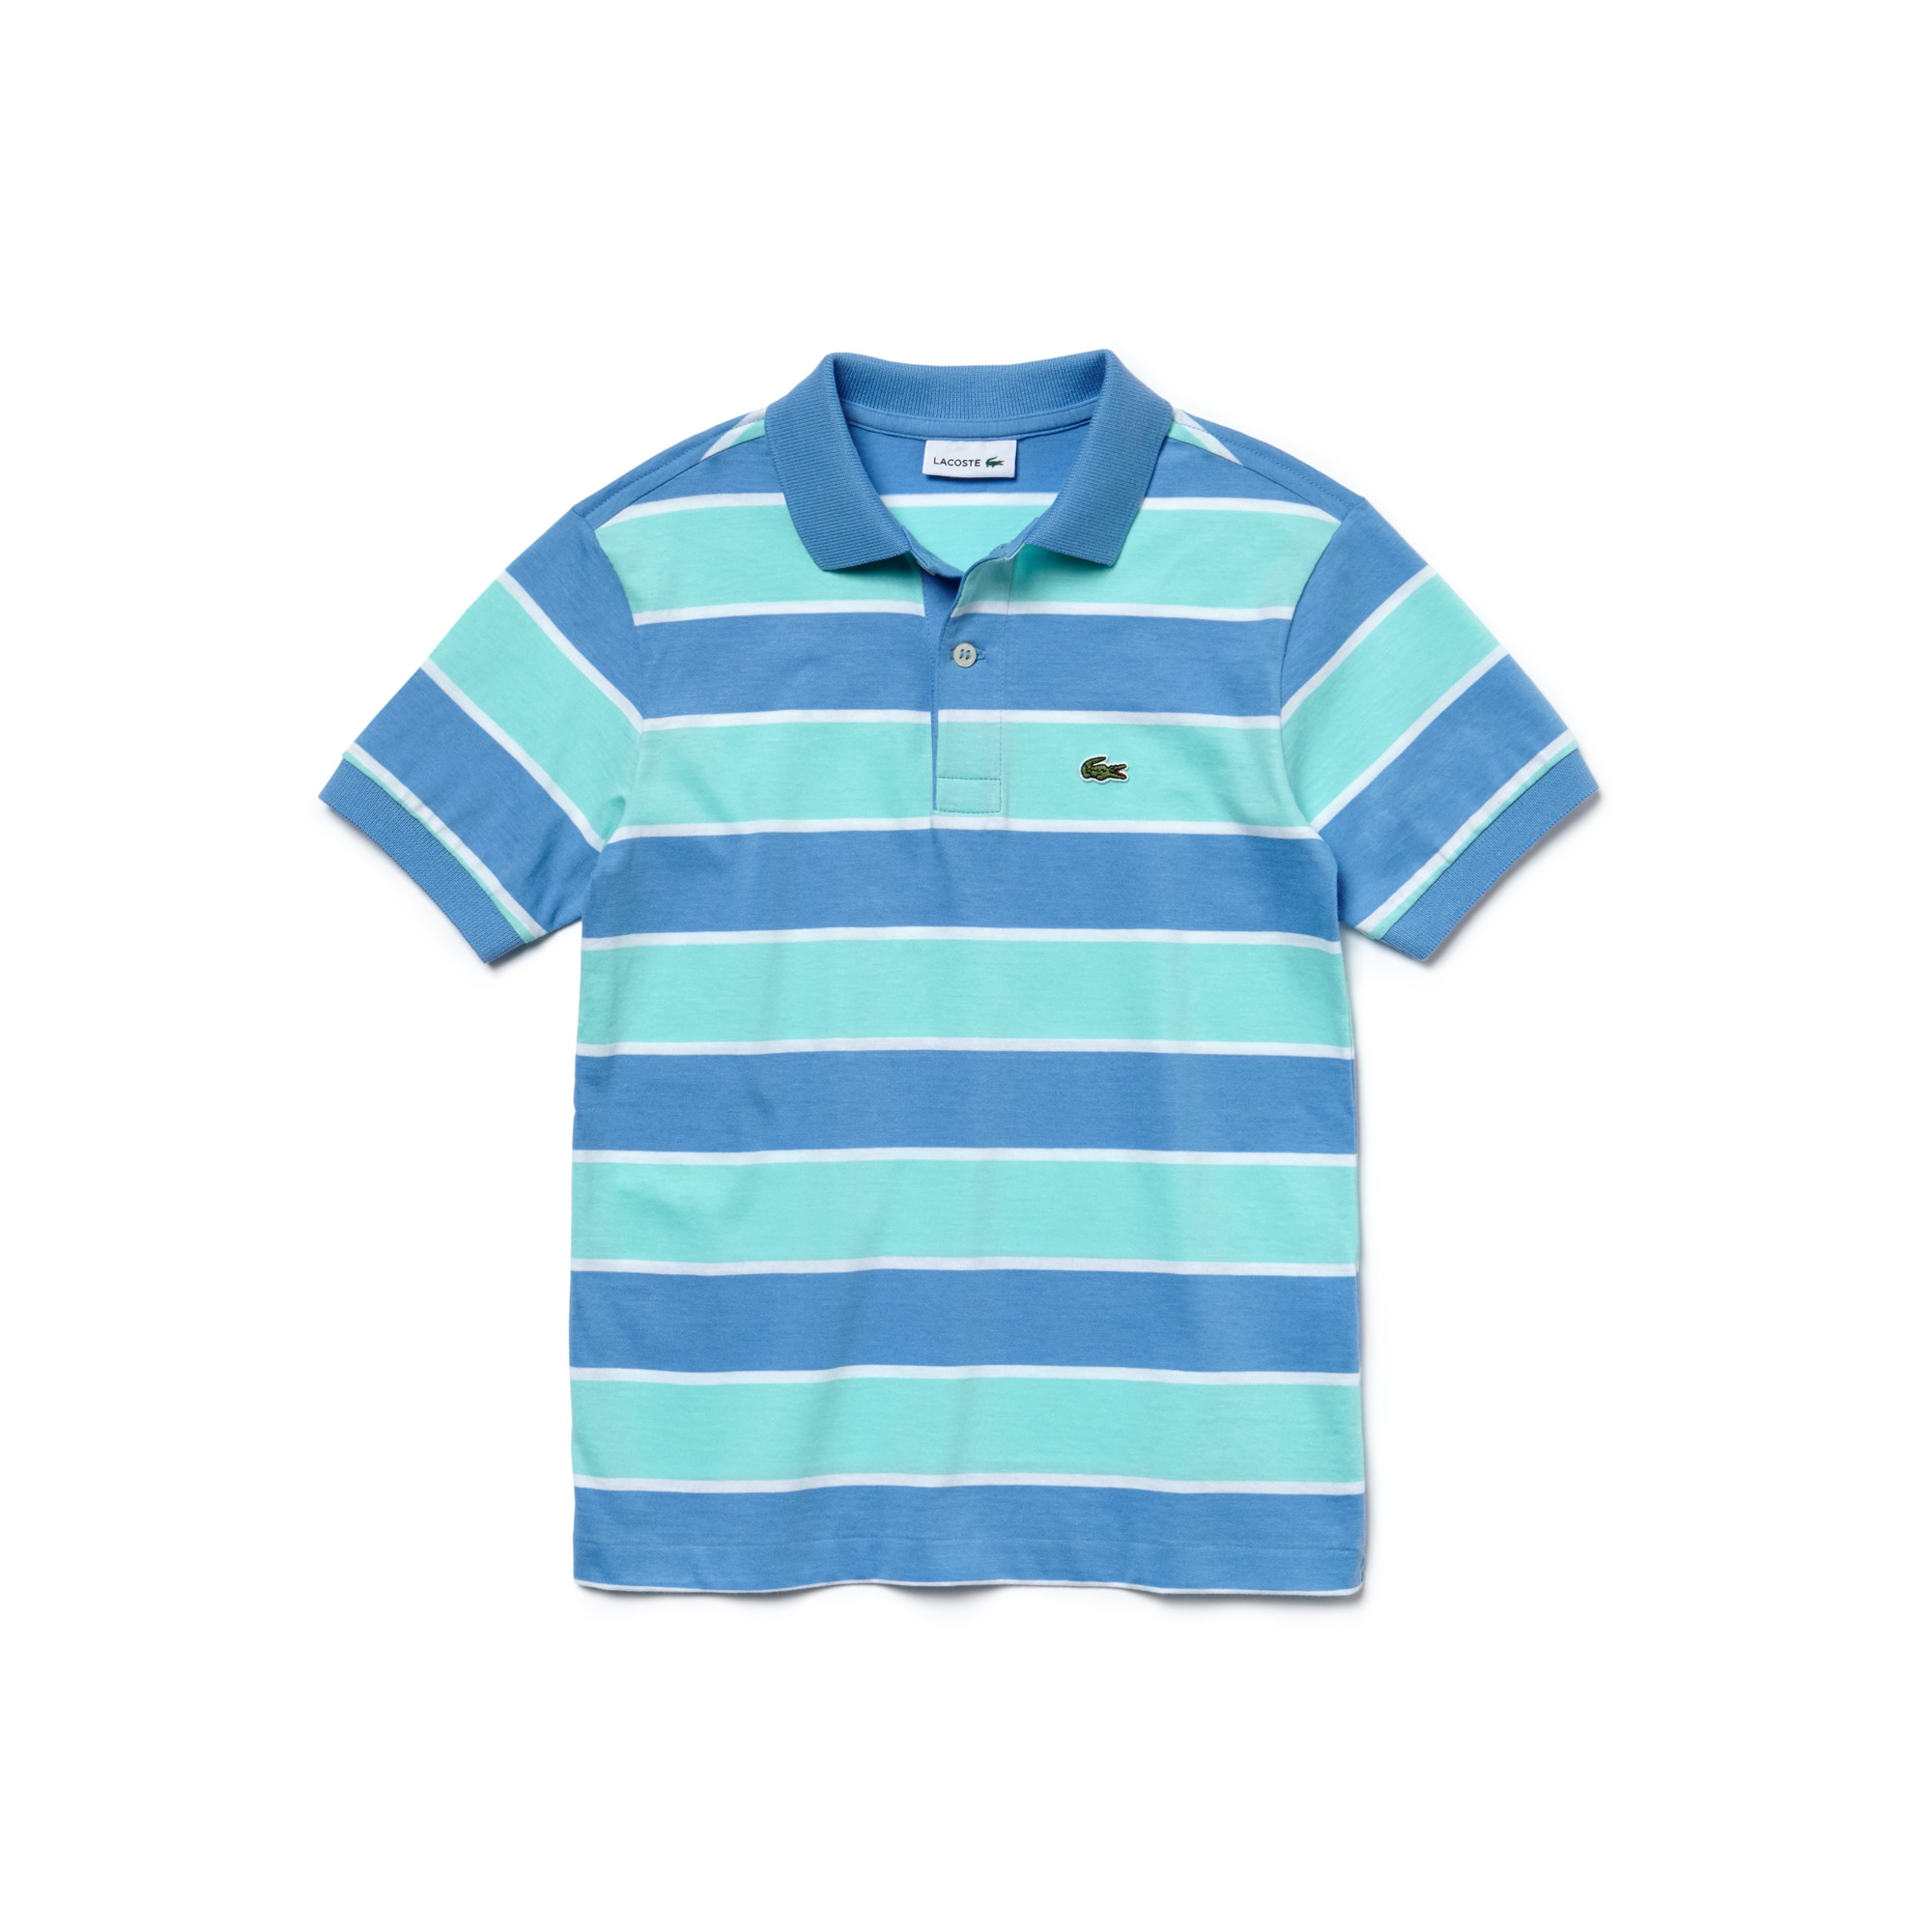 Boy's Lacoste Striped Jersey Polo